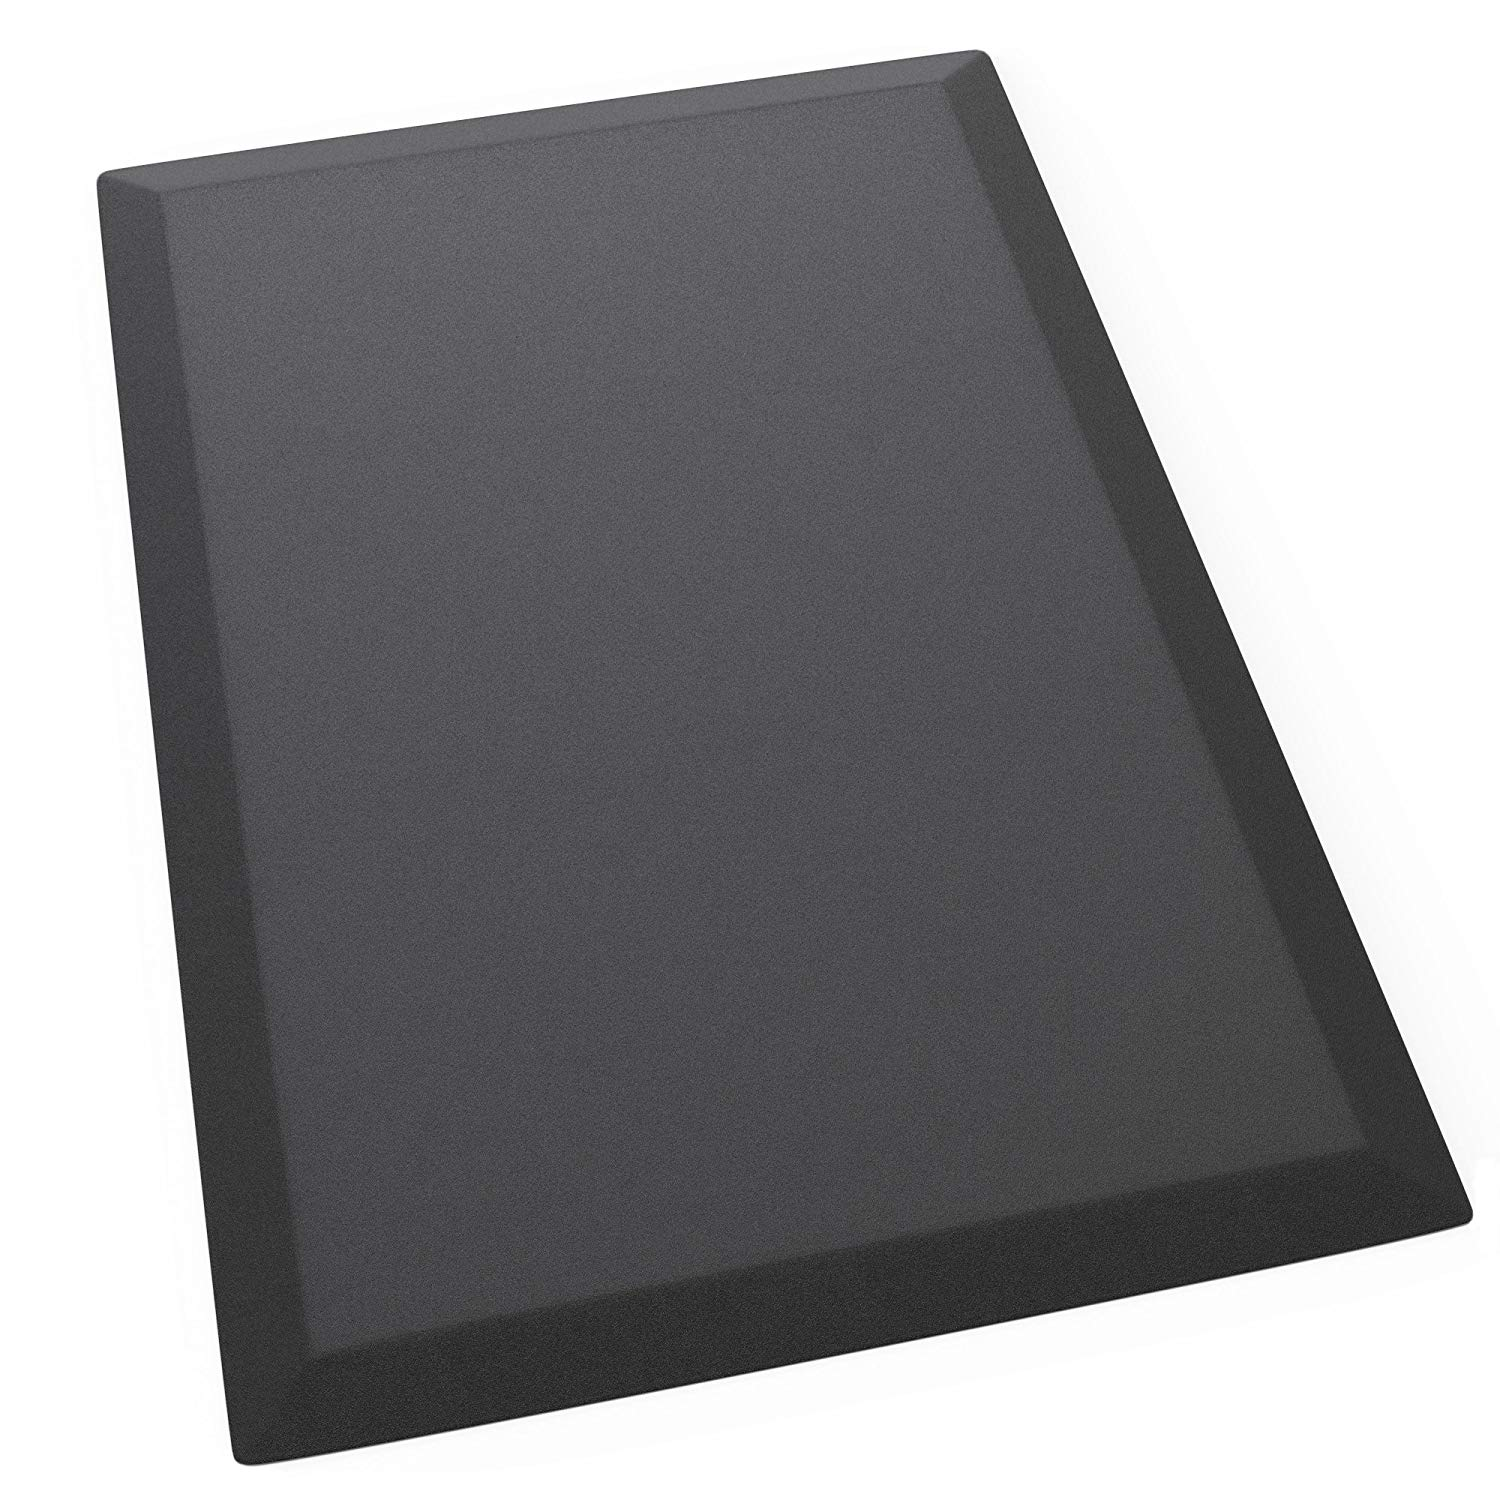 Royal 24 × 36-inch Anti-Fatigue Comfort Mat